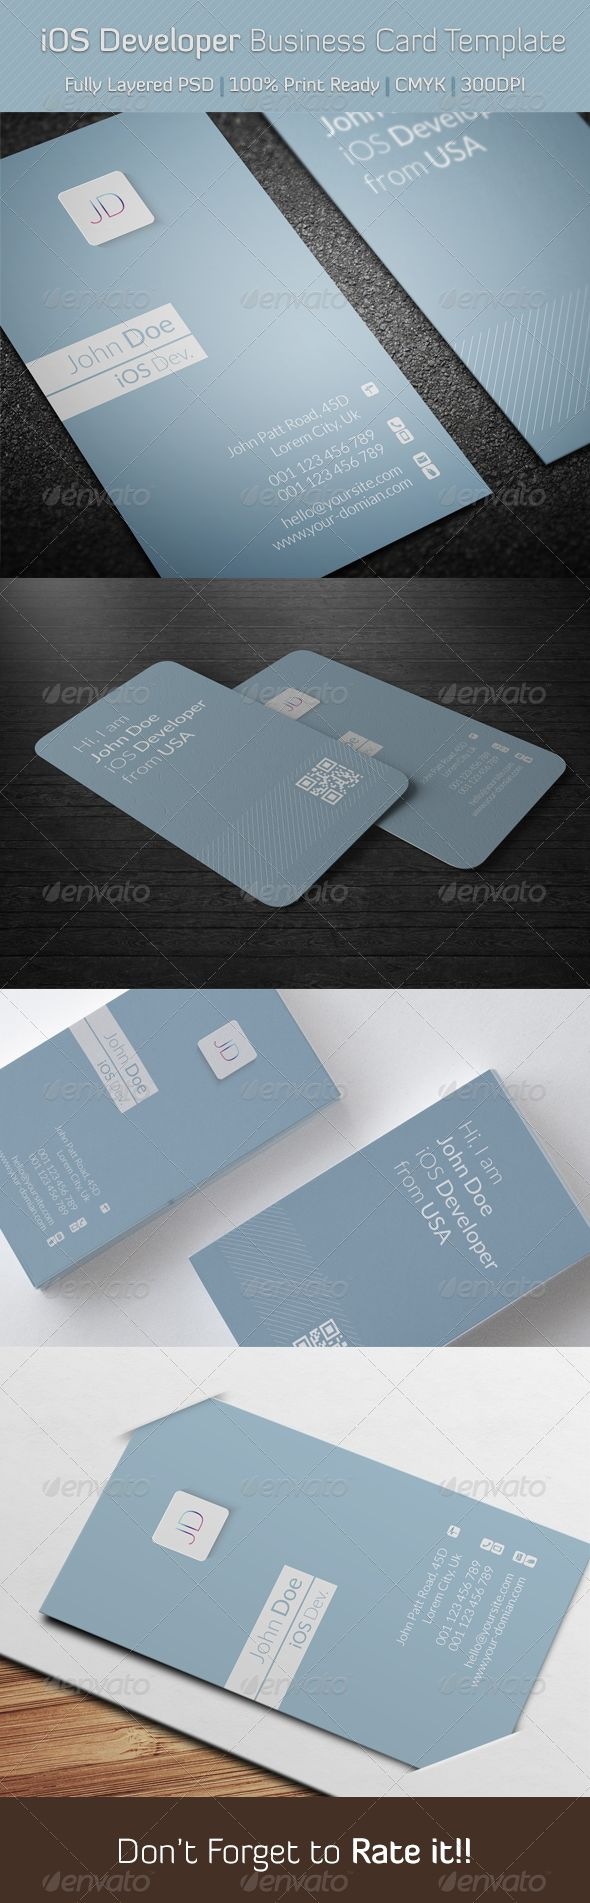 iOS Developer Business Card Template — Photoshop PSD #office #iOS7 developer • Available here → https://graphicriver.net/item/ios-developer-business-card-template/6389702?ref=pxcr